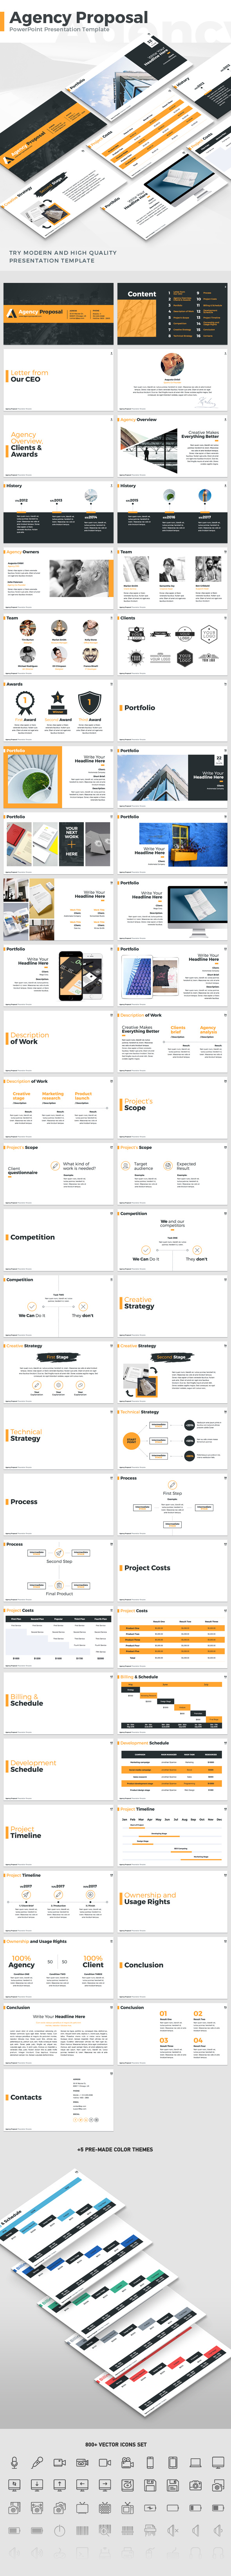 Agency Proposal - PowerPoint Template (PowerPoint Templates)